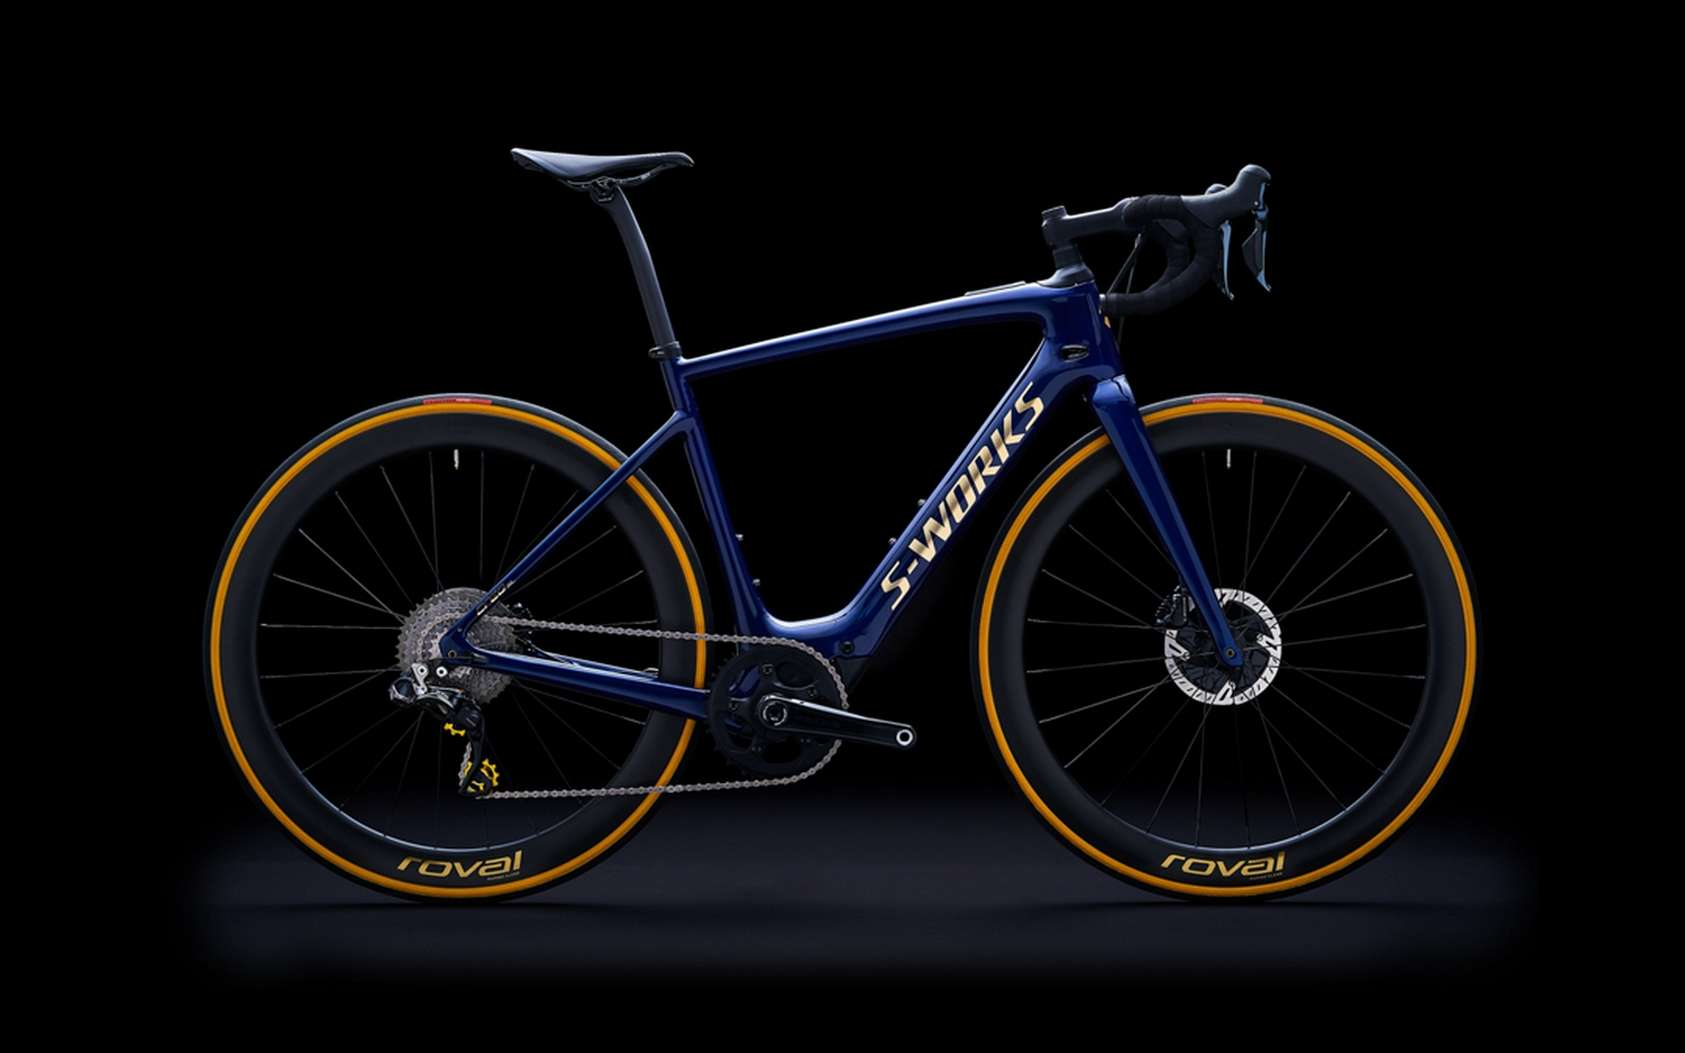 Le Specialized S-Works Turbo Creo SL - Founder's Edition. © Specialized